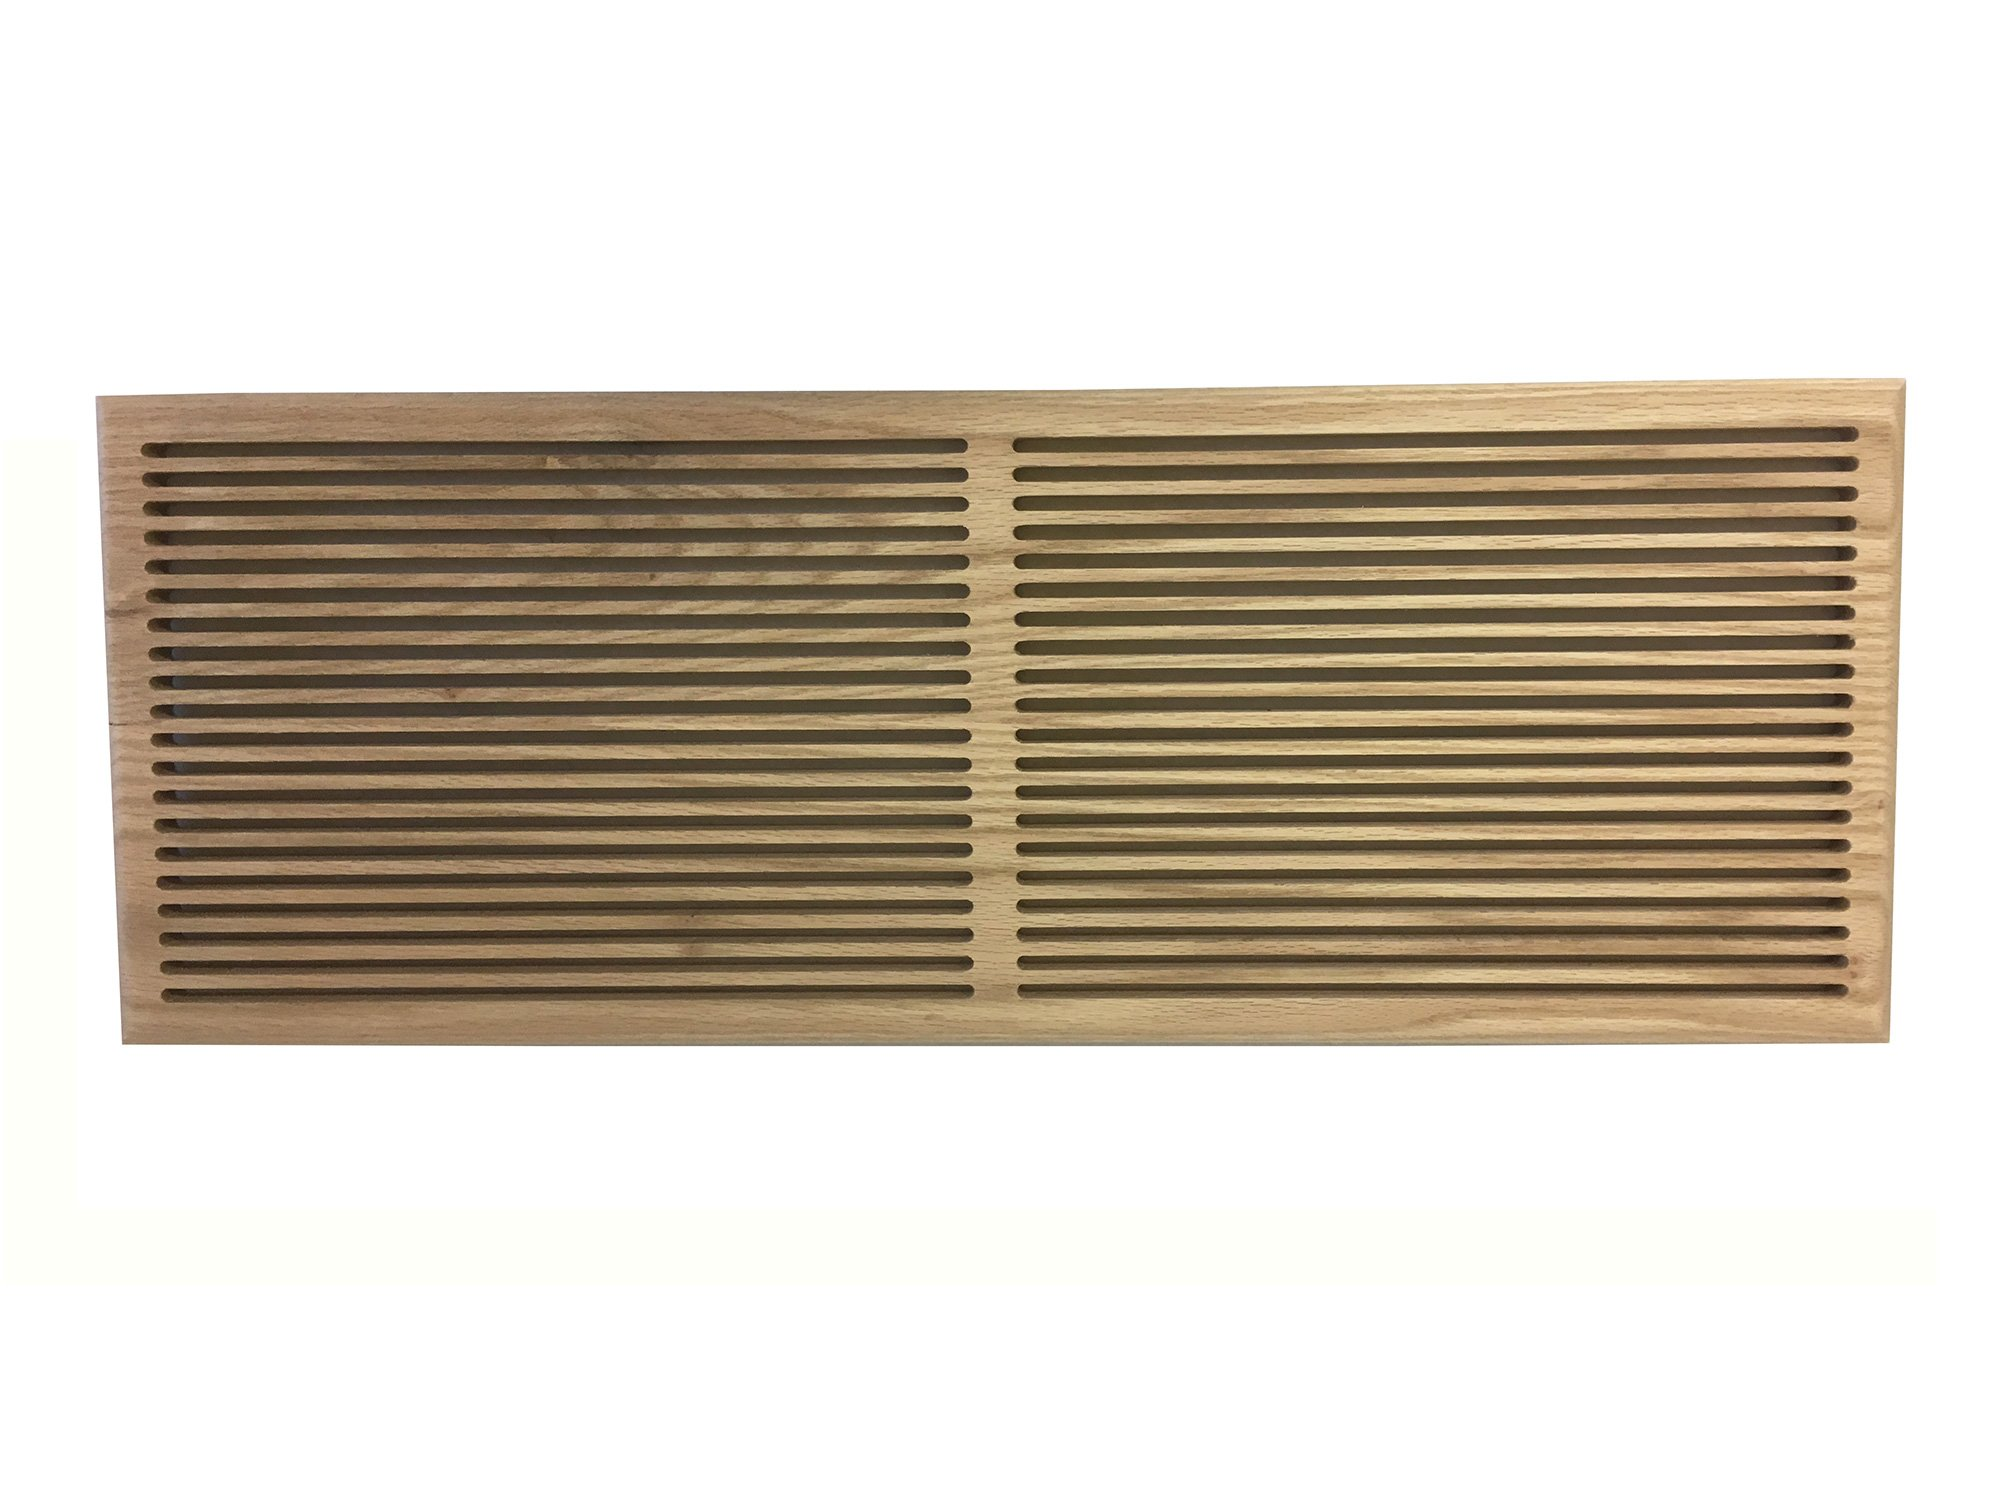 10 Inch x 24 Inch White Oak Hardwood Vent Floor Register Surface Mount, Slotted Style, Unfinished